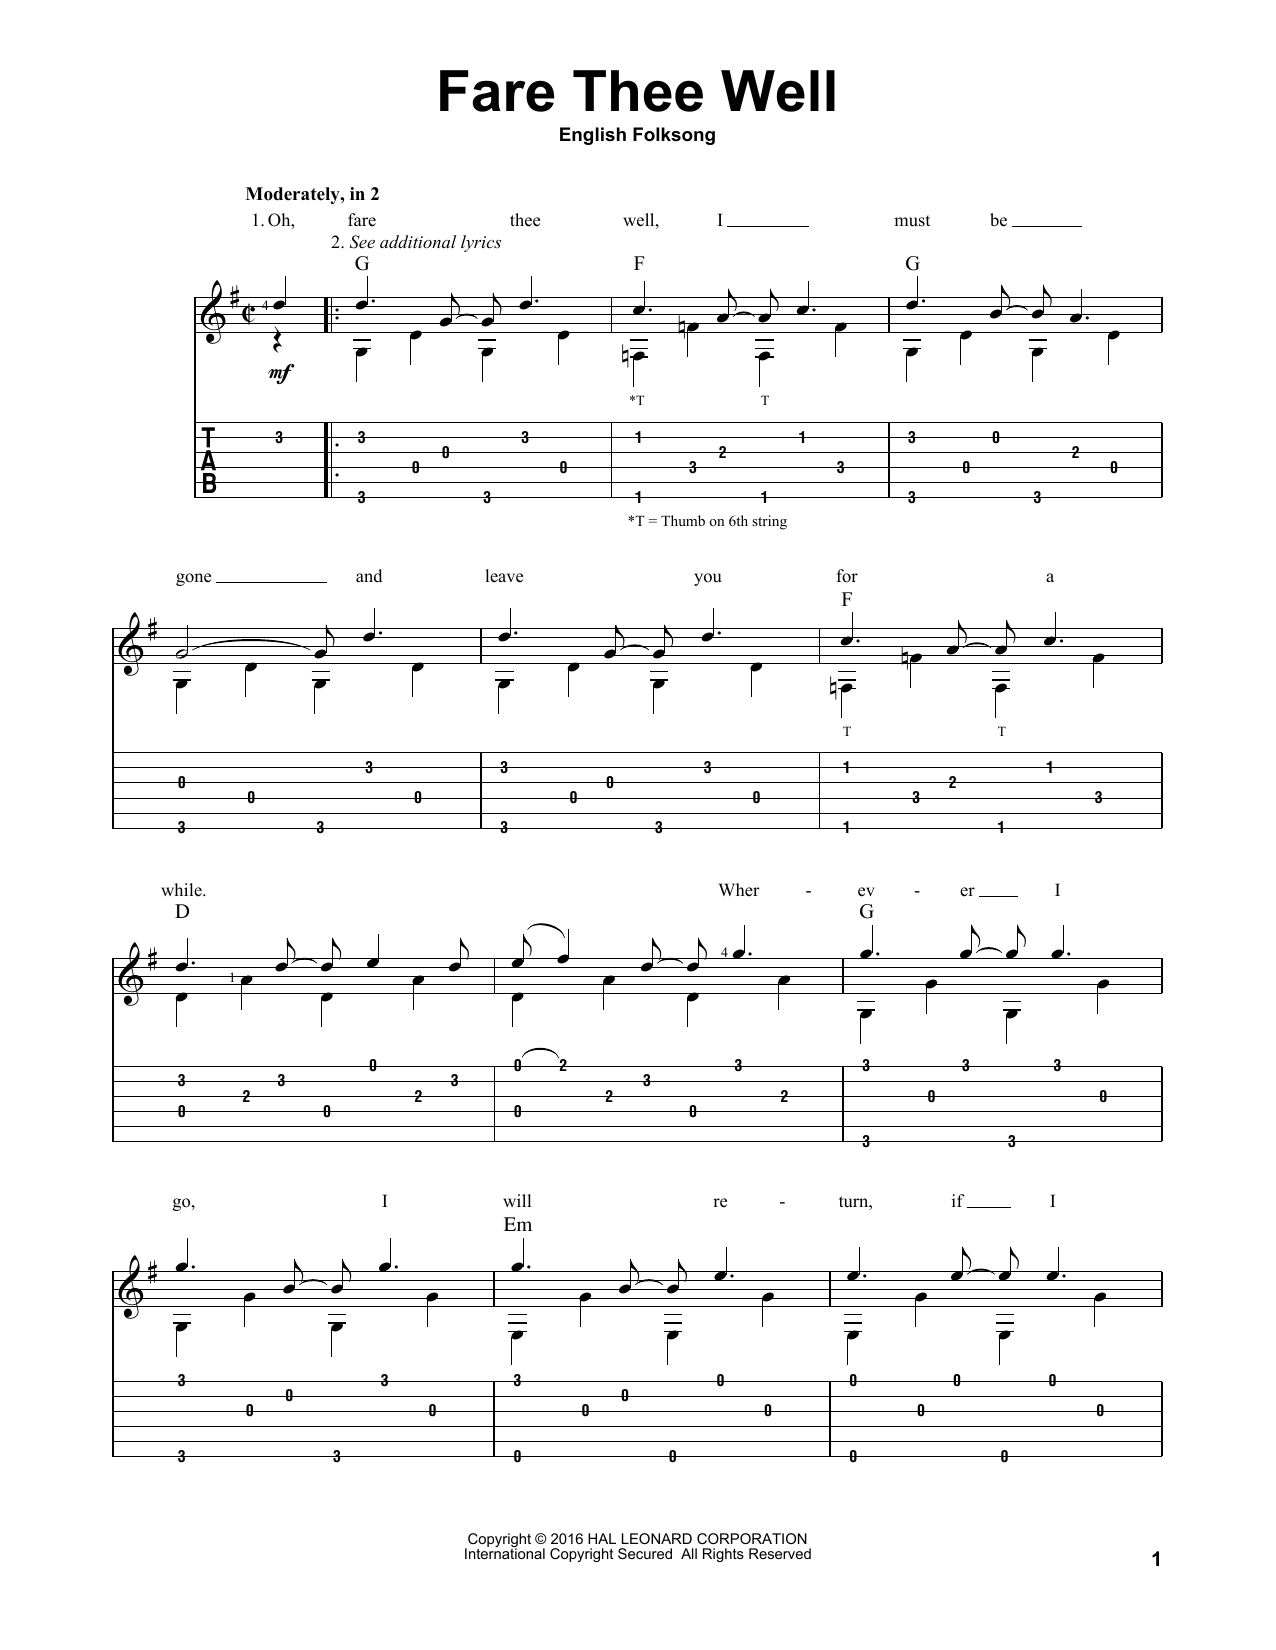 Fare Thee Well Sheet Music